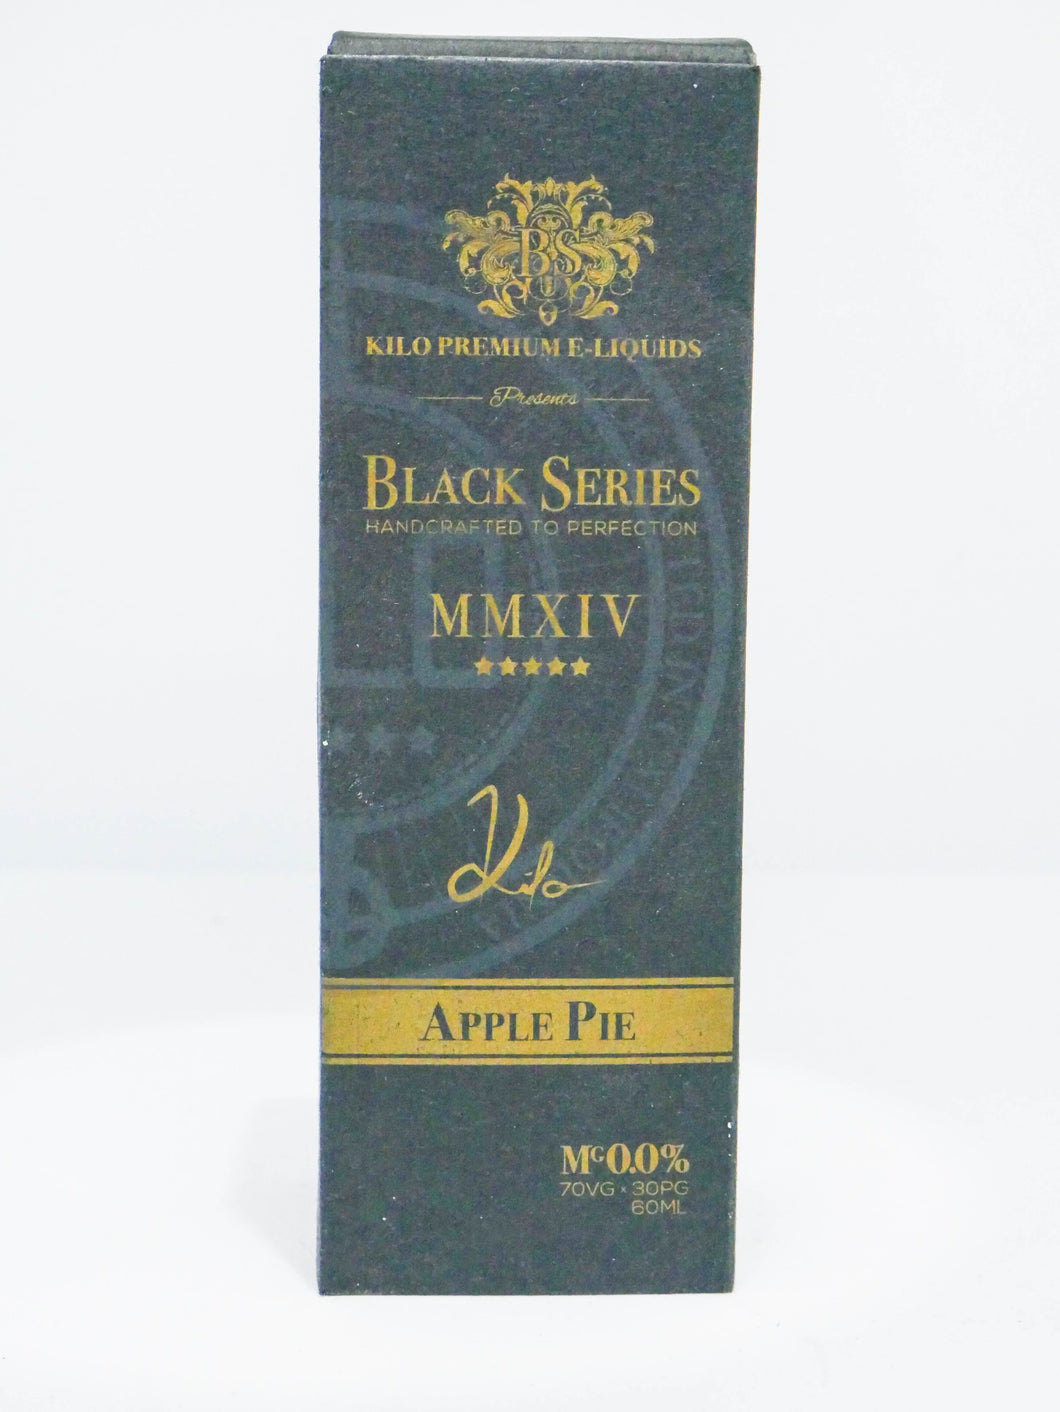 Kilo Premium E Liquid Black Series Apple Pie | Online Vape Shop | Bargain Vape UK